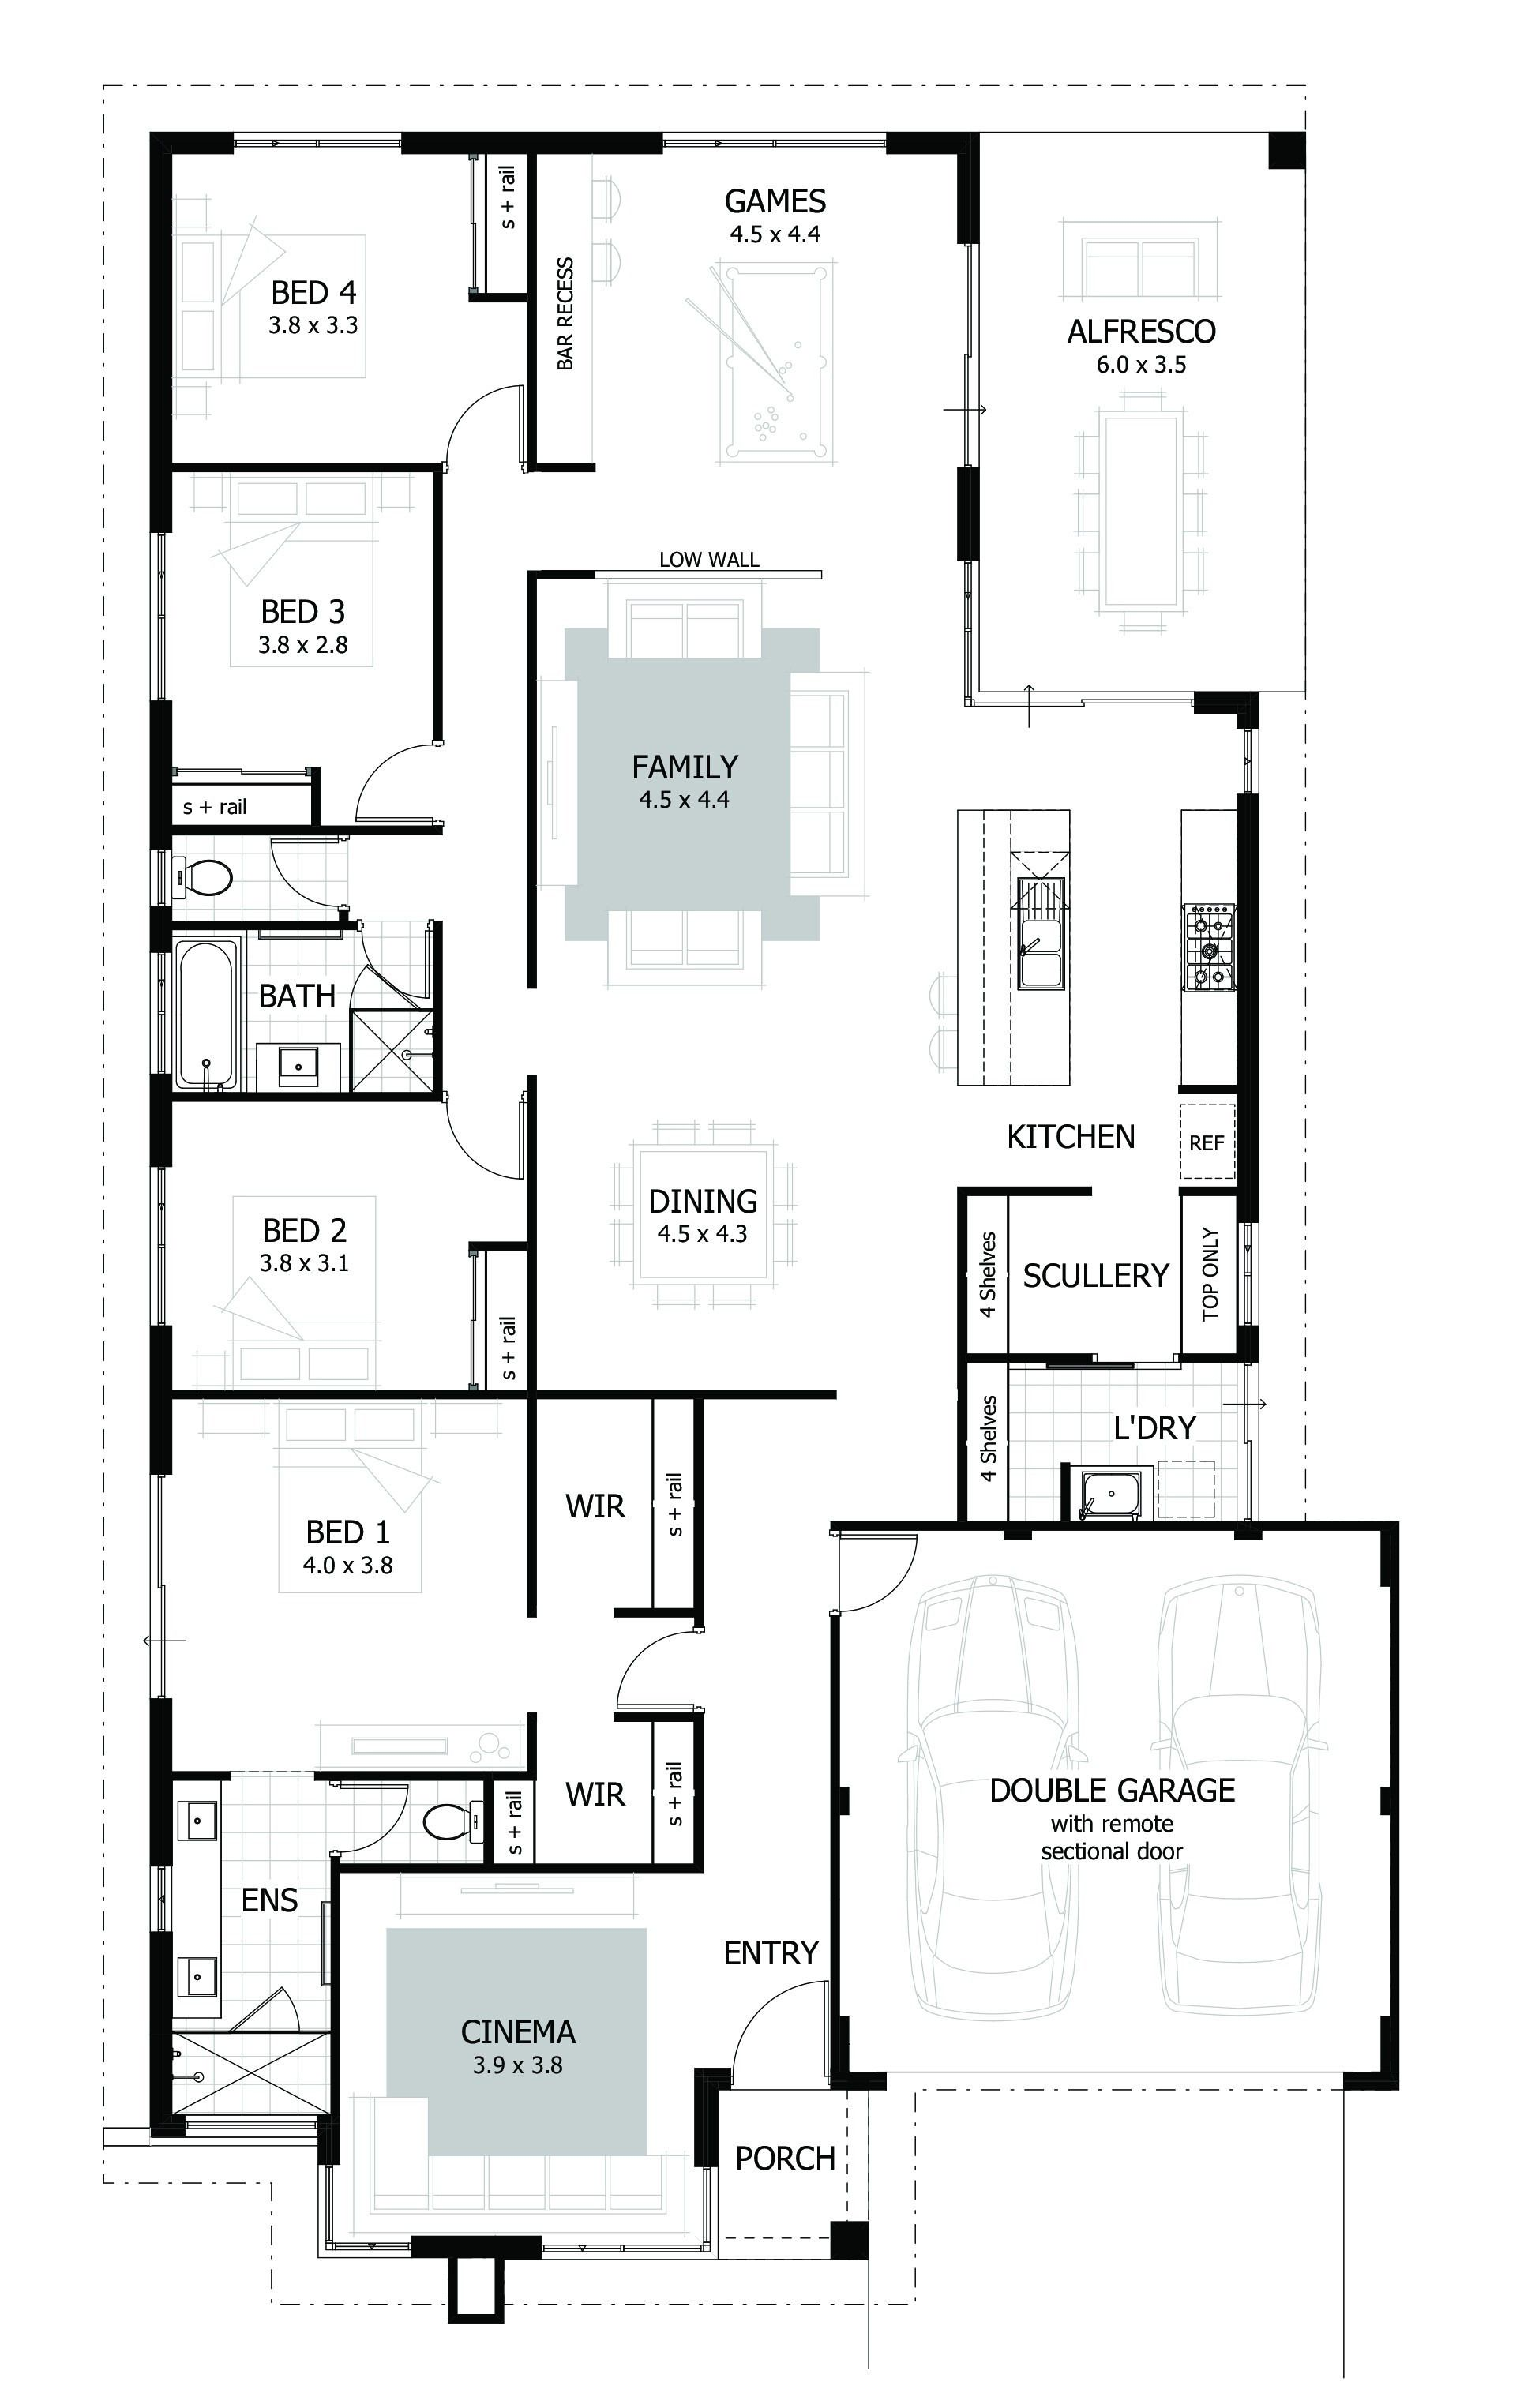 Drawing House Plans App 2020 In 2020 House Plan App Drawing House Plans House Plans